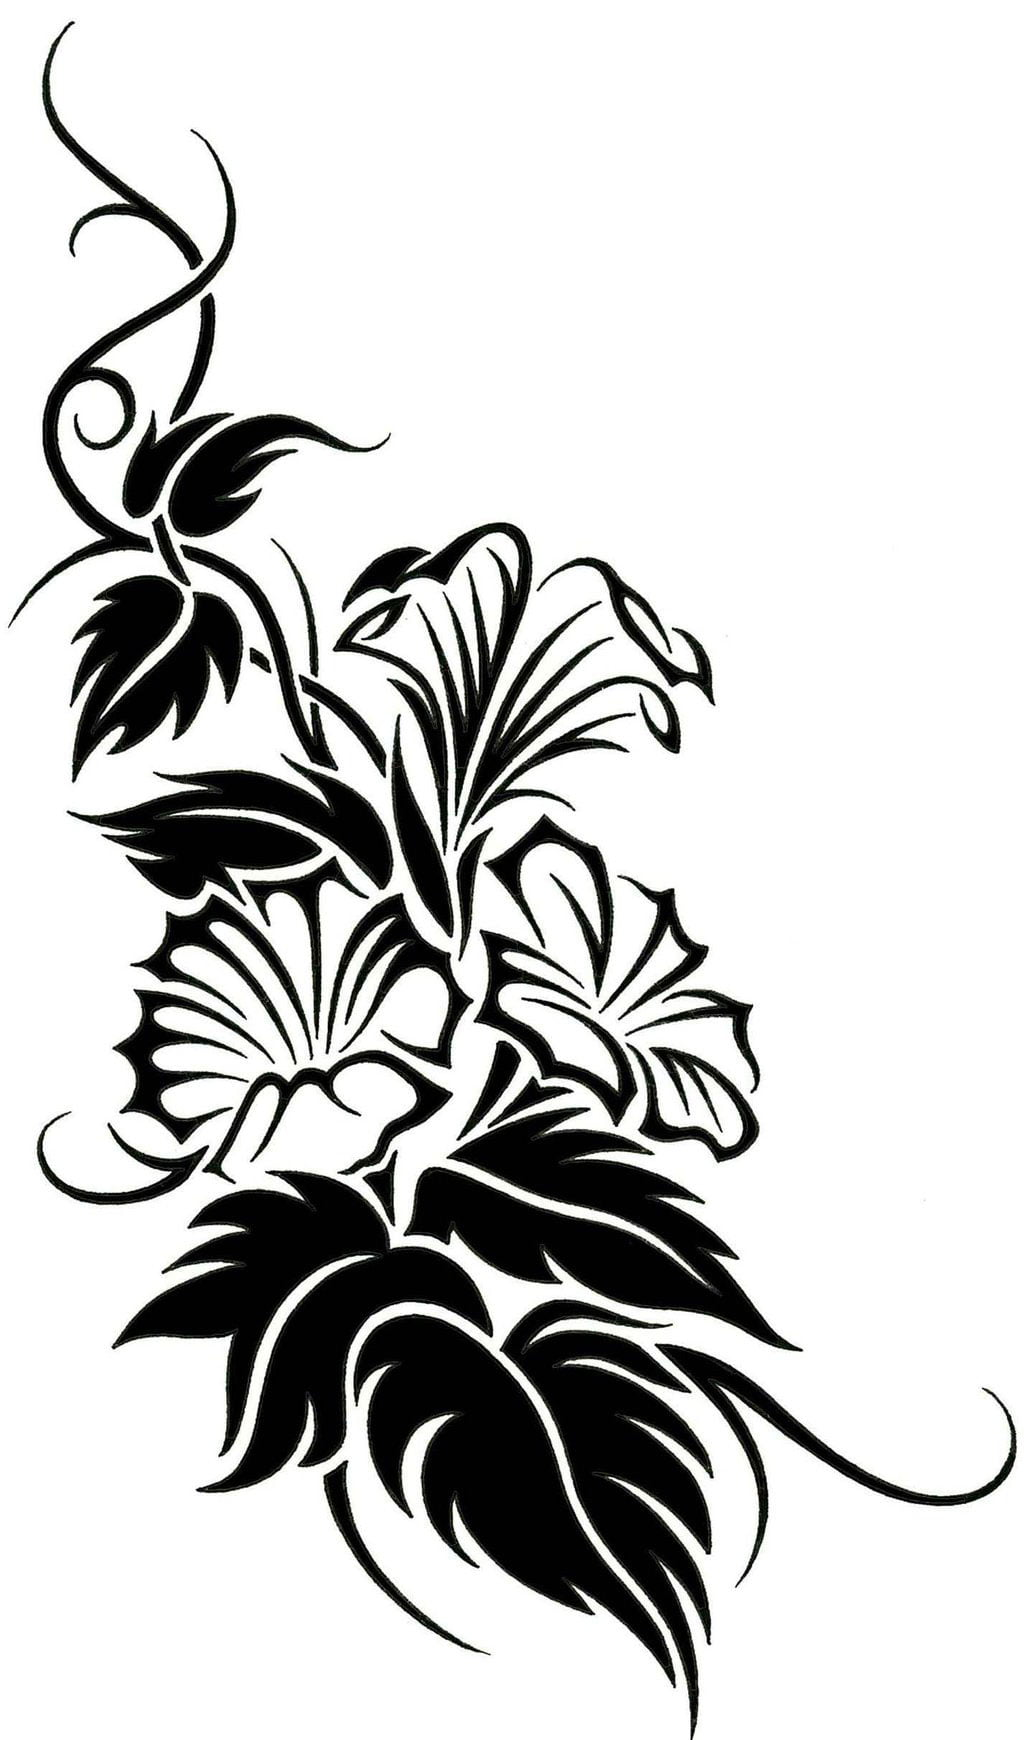 Tribal Vine Tattoo Designs